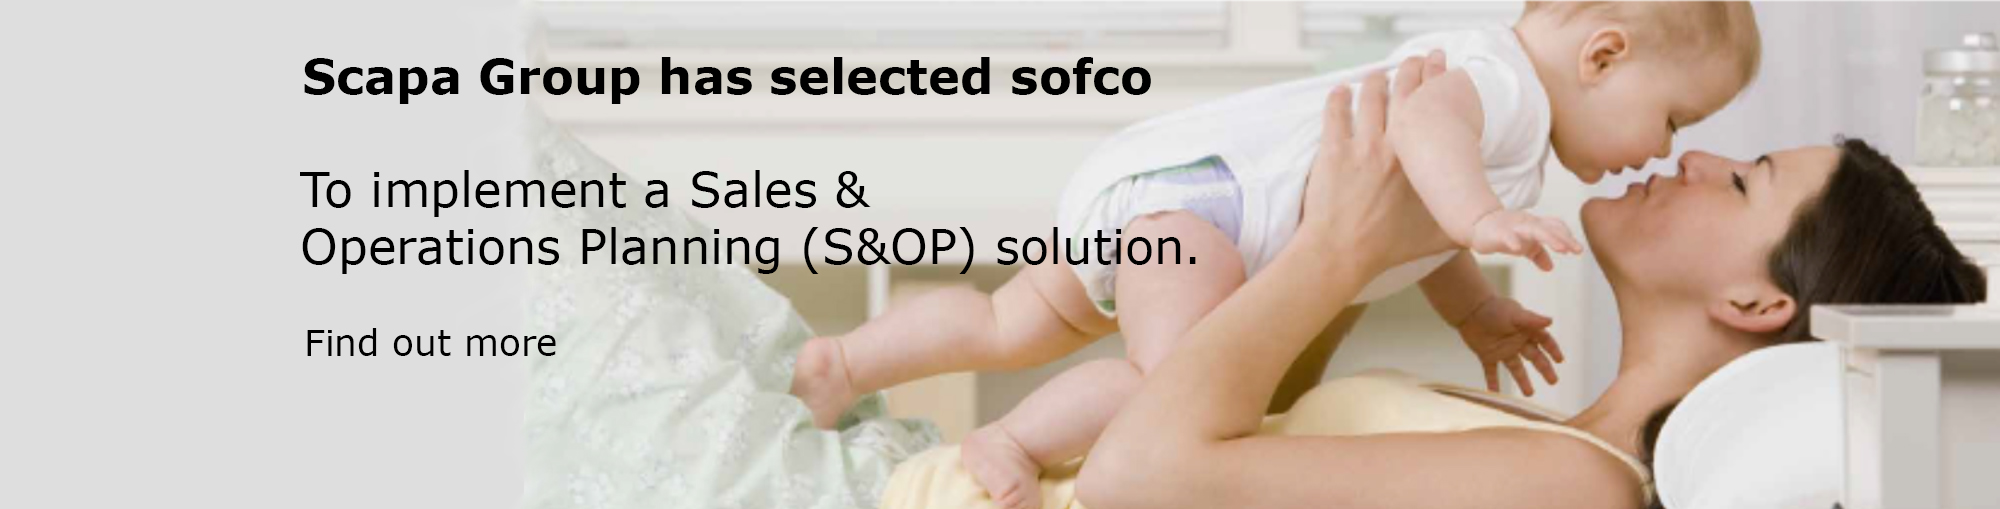 Scapa Group has selected sofco